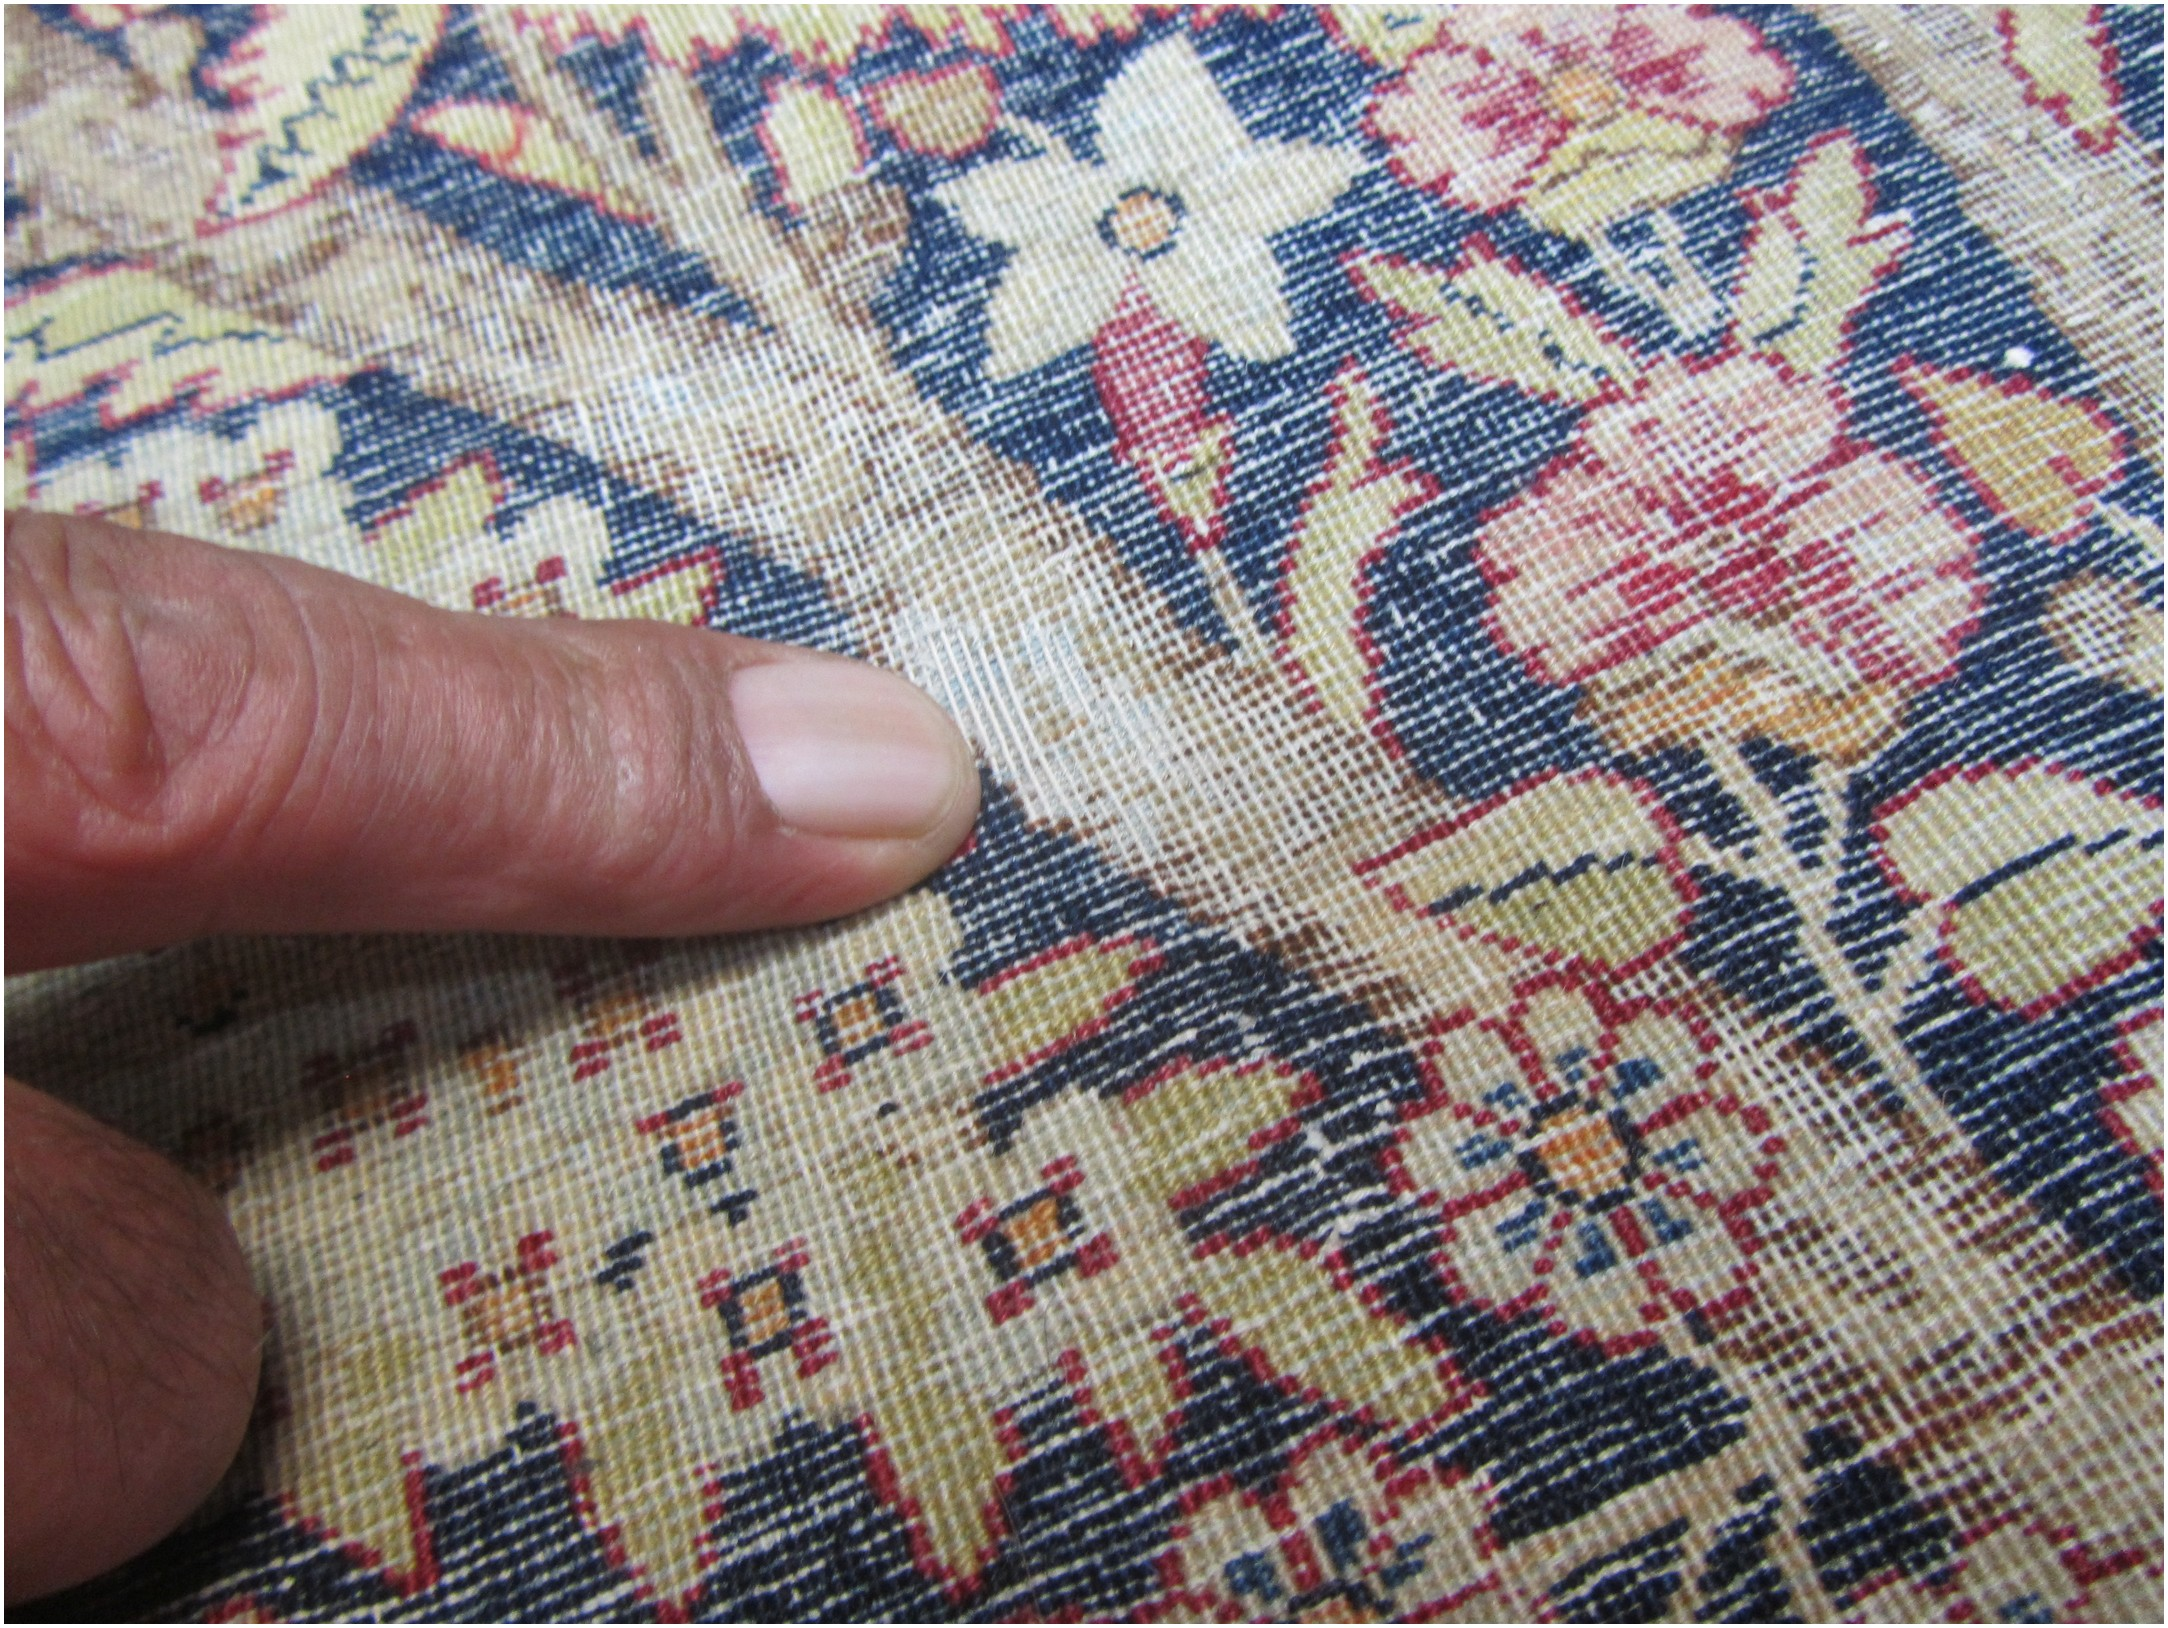 Damage is visible from the back of the rug.